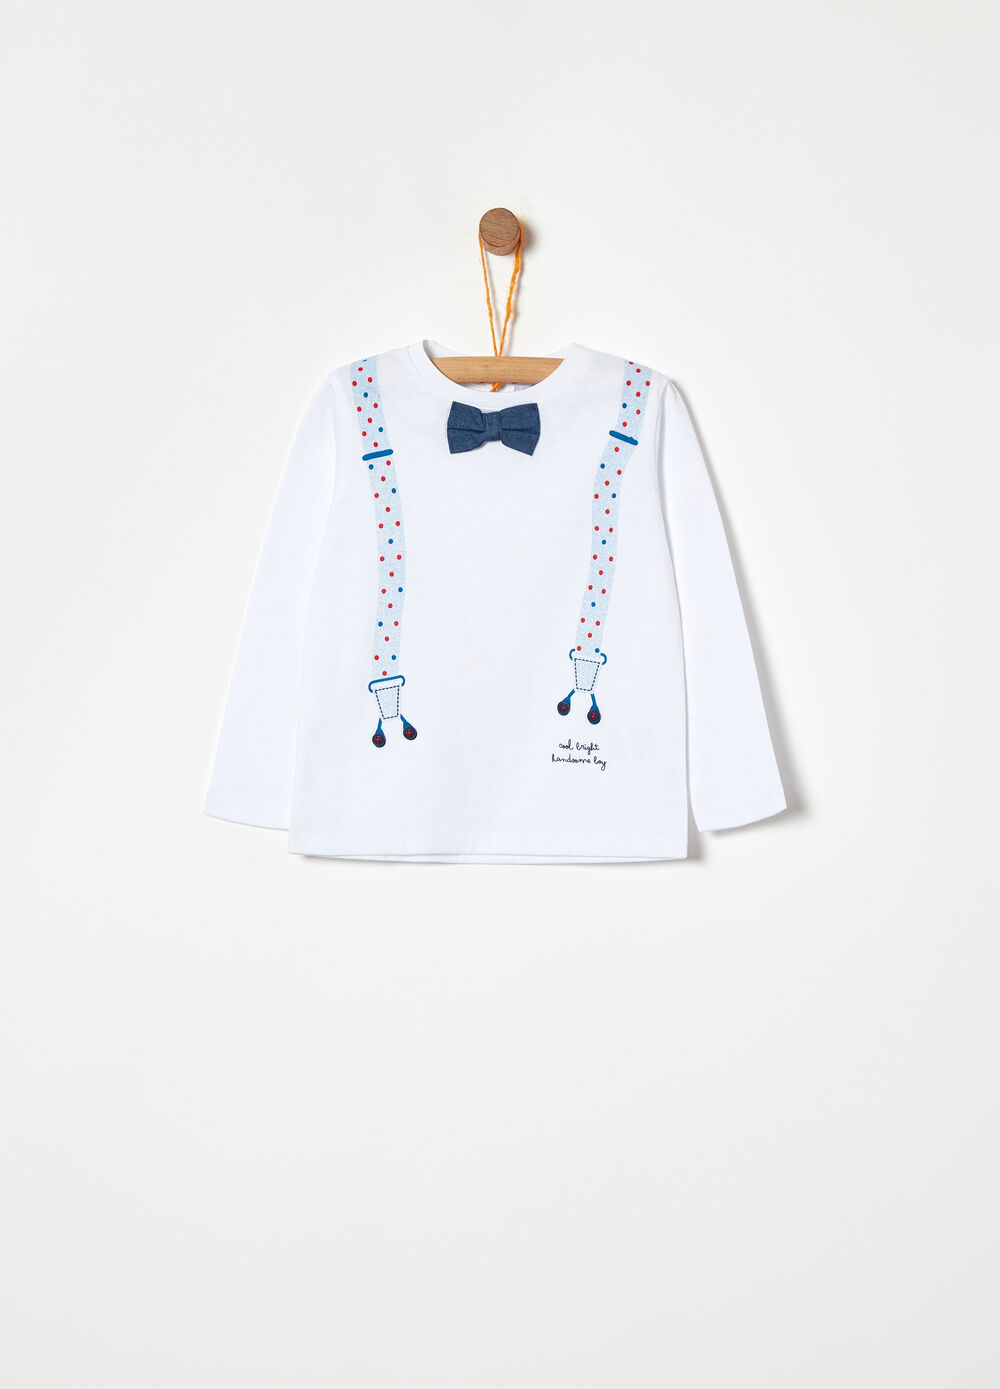 100% BCI cotton T-shirt with bow tie print